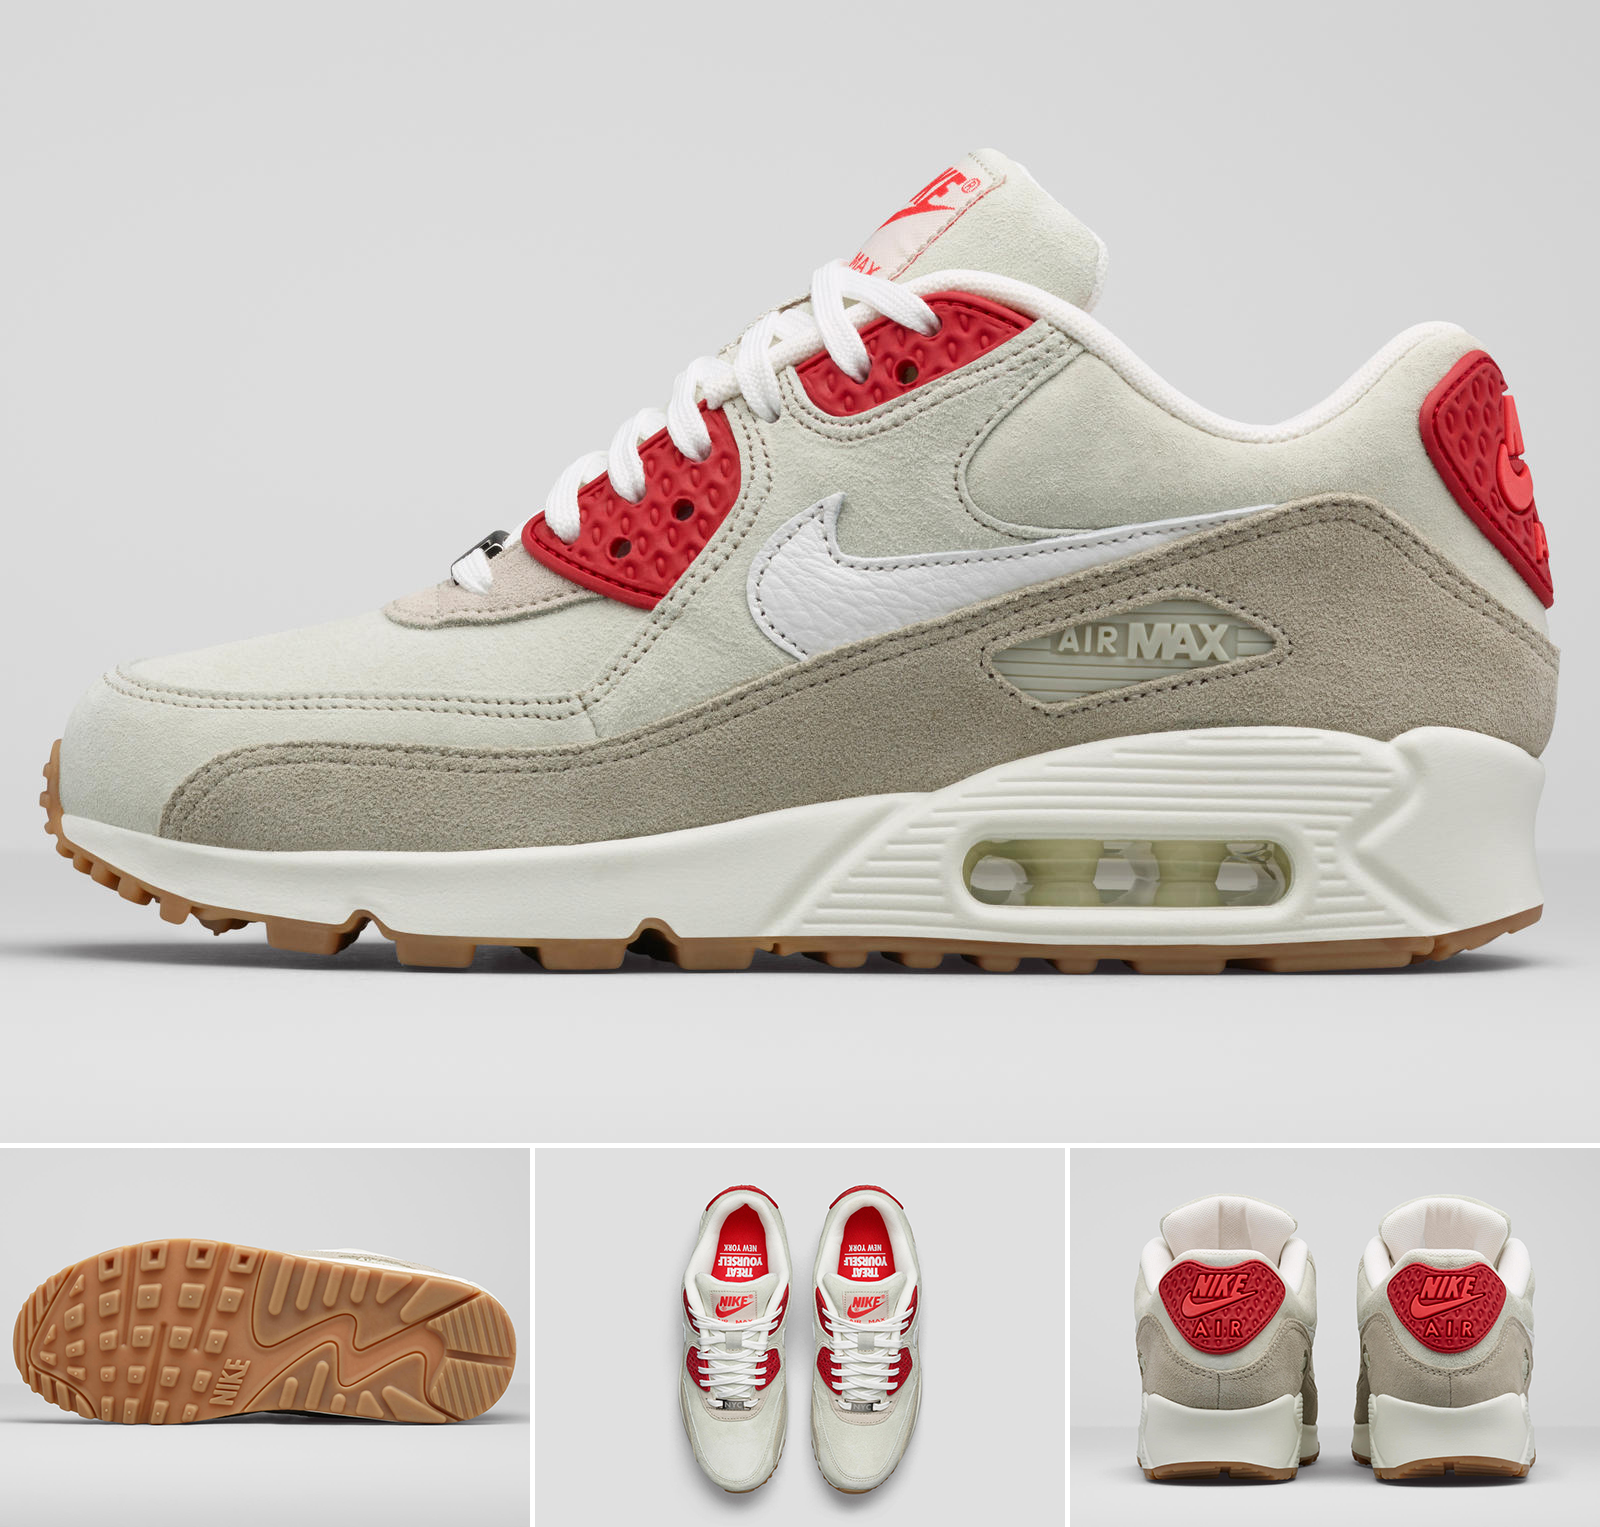 Nike-air-max-90-sweet-city-pack-new-york-strawberry-cheesecake-2